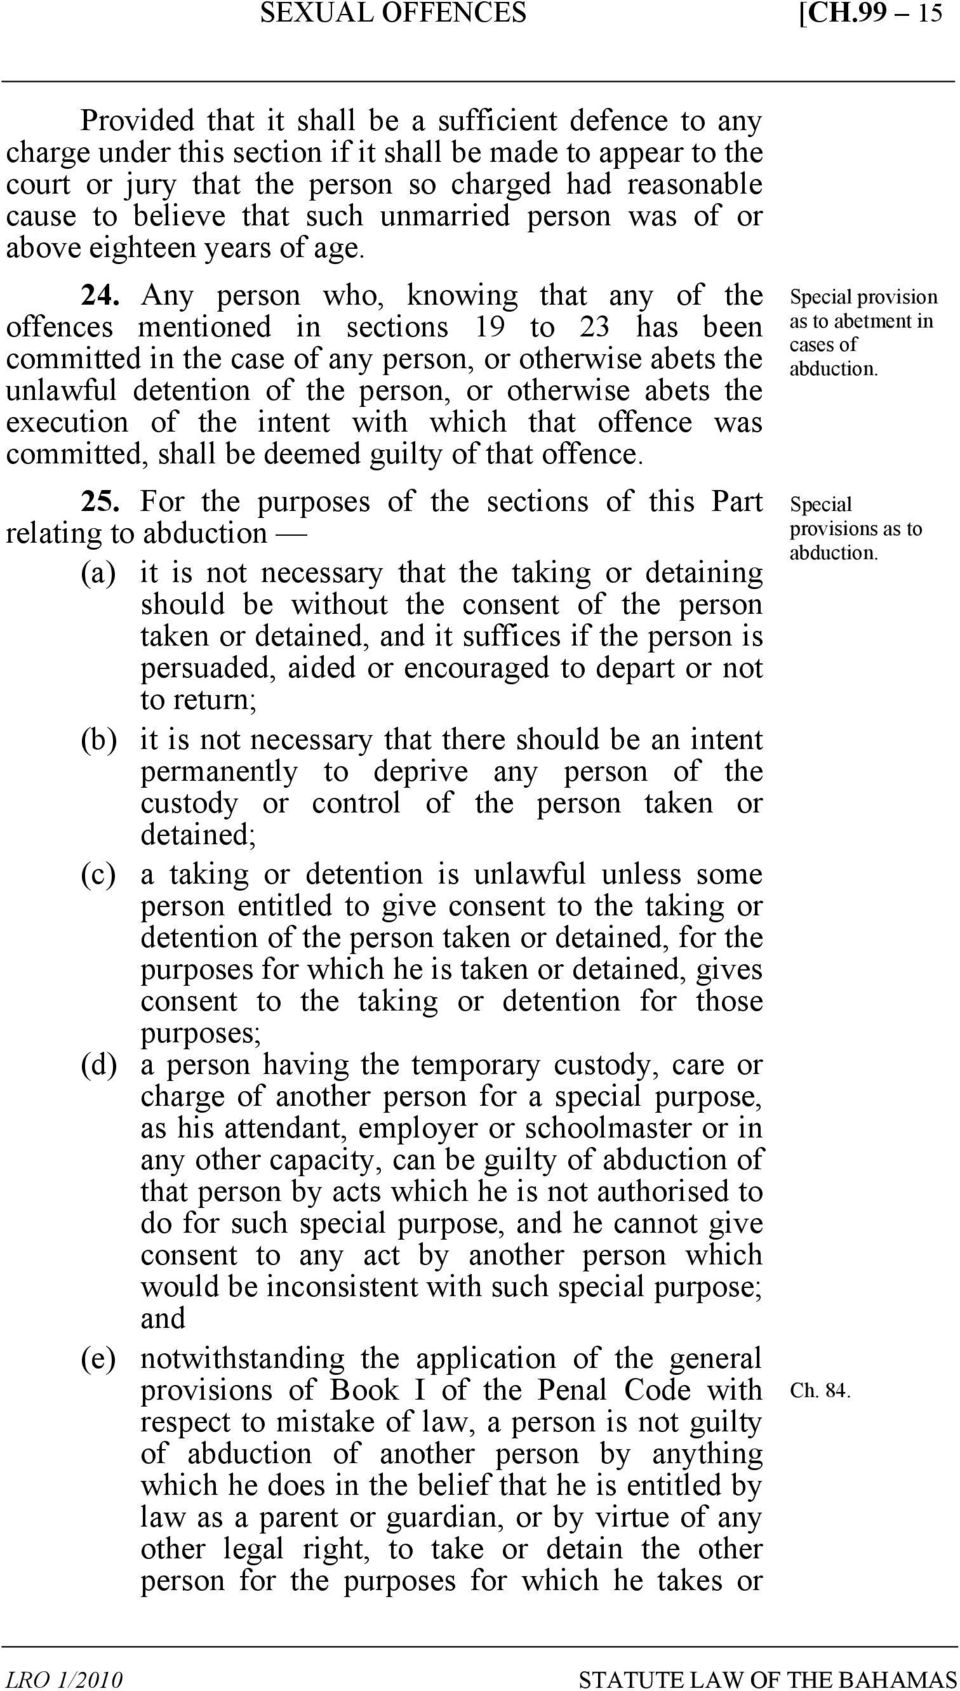 Any person who, knowing that any of the offences mentioned in sections 19 to 23 has been committed in the case of any person, or otherwise abets the unlawful detention of the person, or otherwise